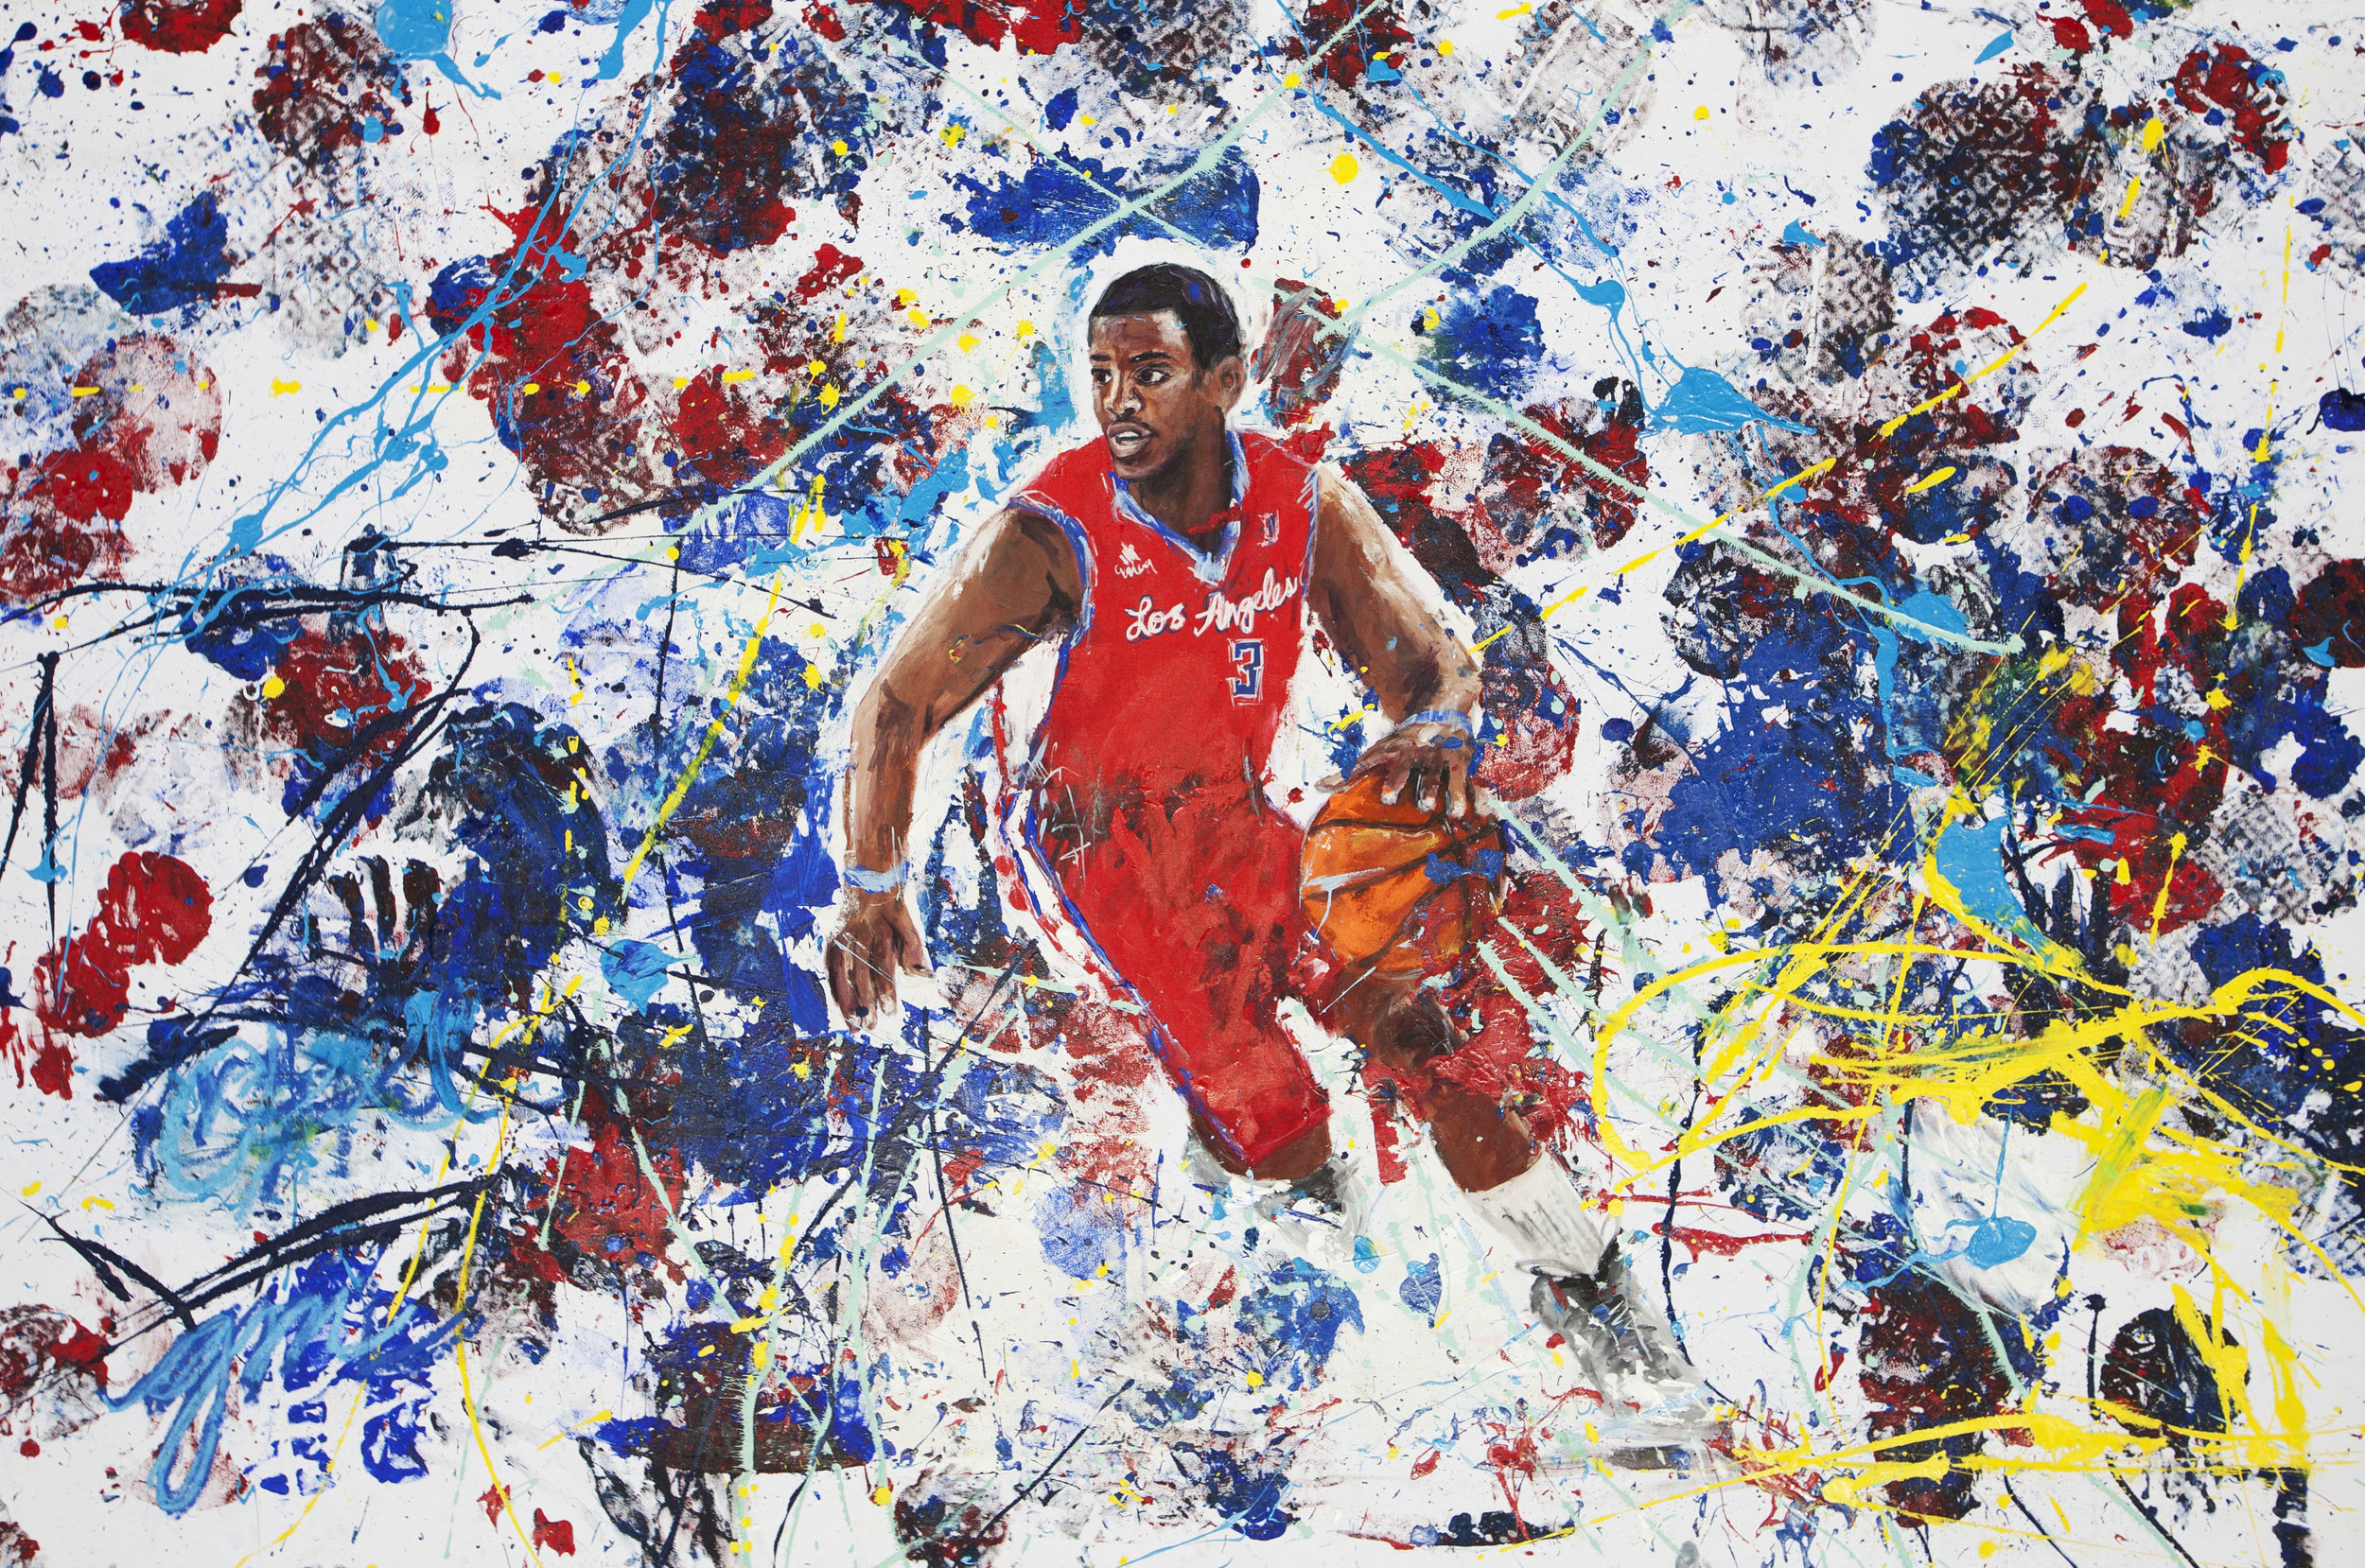 HOOPS, 2016 (A CHRIS PAUL x GENA MILANESI COLLABORATION)   60 X 86 INCHES  ACRYLIC ON STRETCHED LINEN CANVAS   *pricing available upon request - portion of sales will go to  THE CHRIS PAUL FAMILY FOUNDATION       CLICK HERE TO SEE THE BEHIND THE SCENES VIDEO